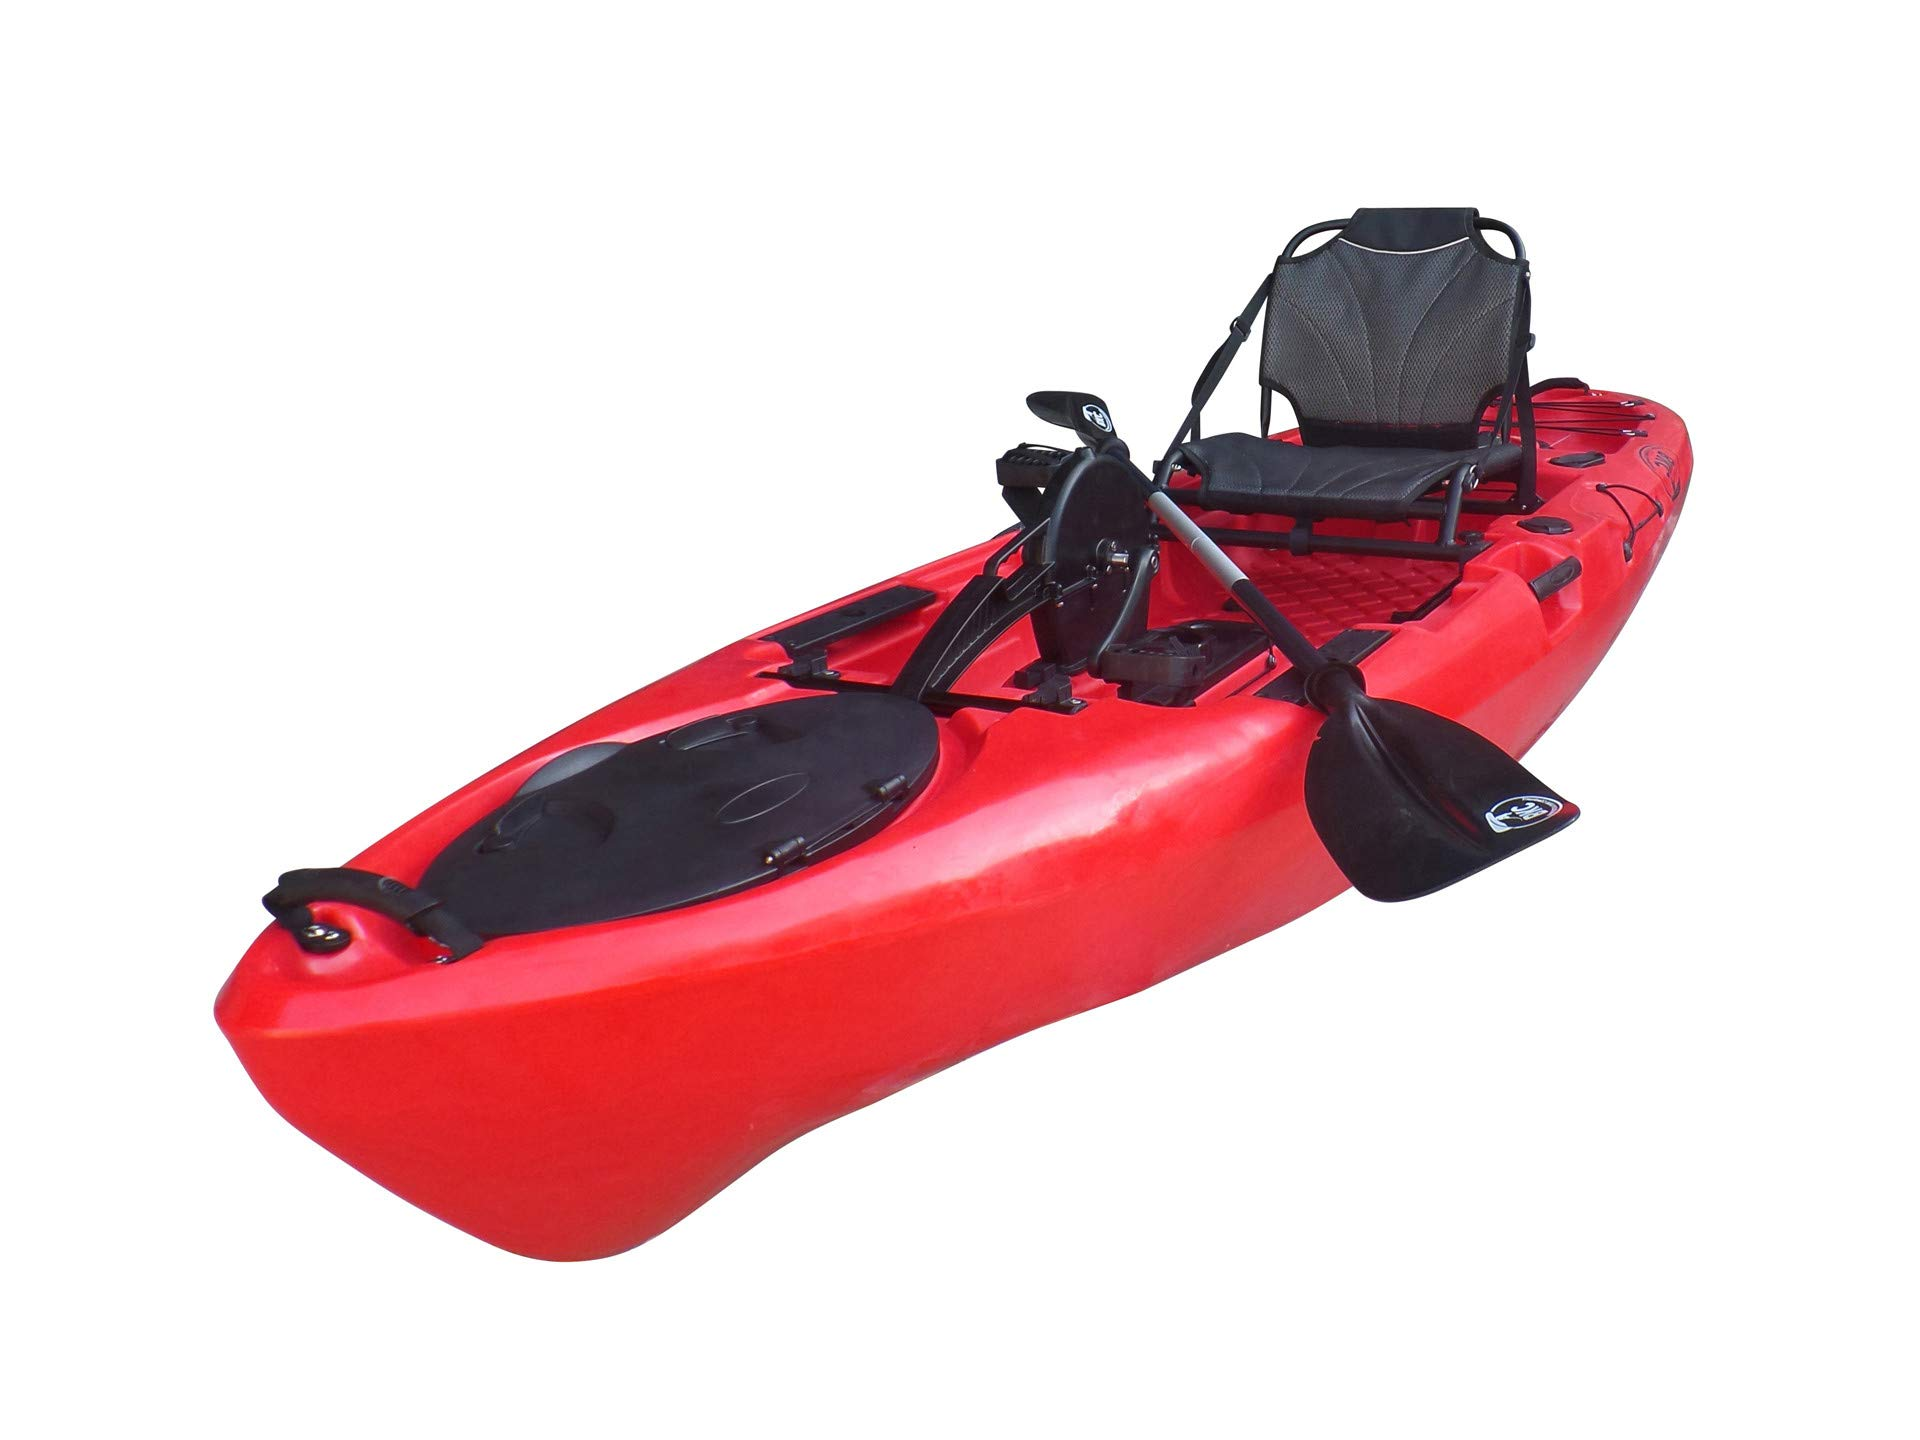 BKC PK11 10.6' Single Propeller Pedal Drive Fishing Kayak W/Rudder System, Paddle and Upright Back Support Aluminum Frame Seat Person Foot Operated Kayak by Brooklyn Kayak Company